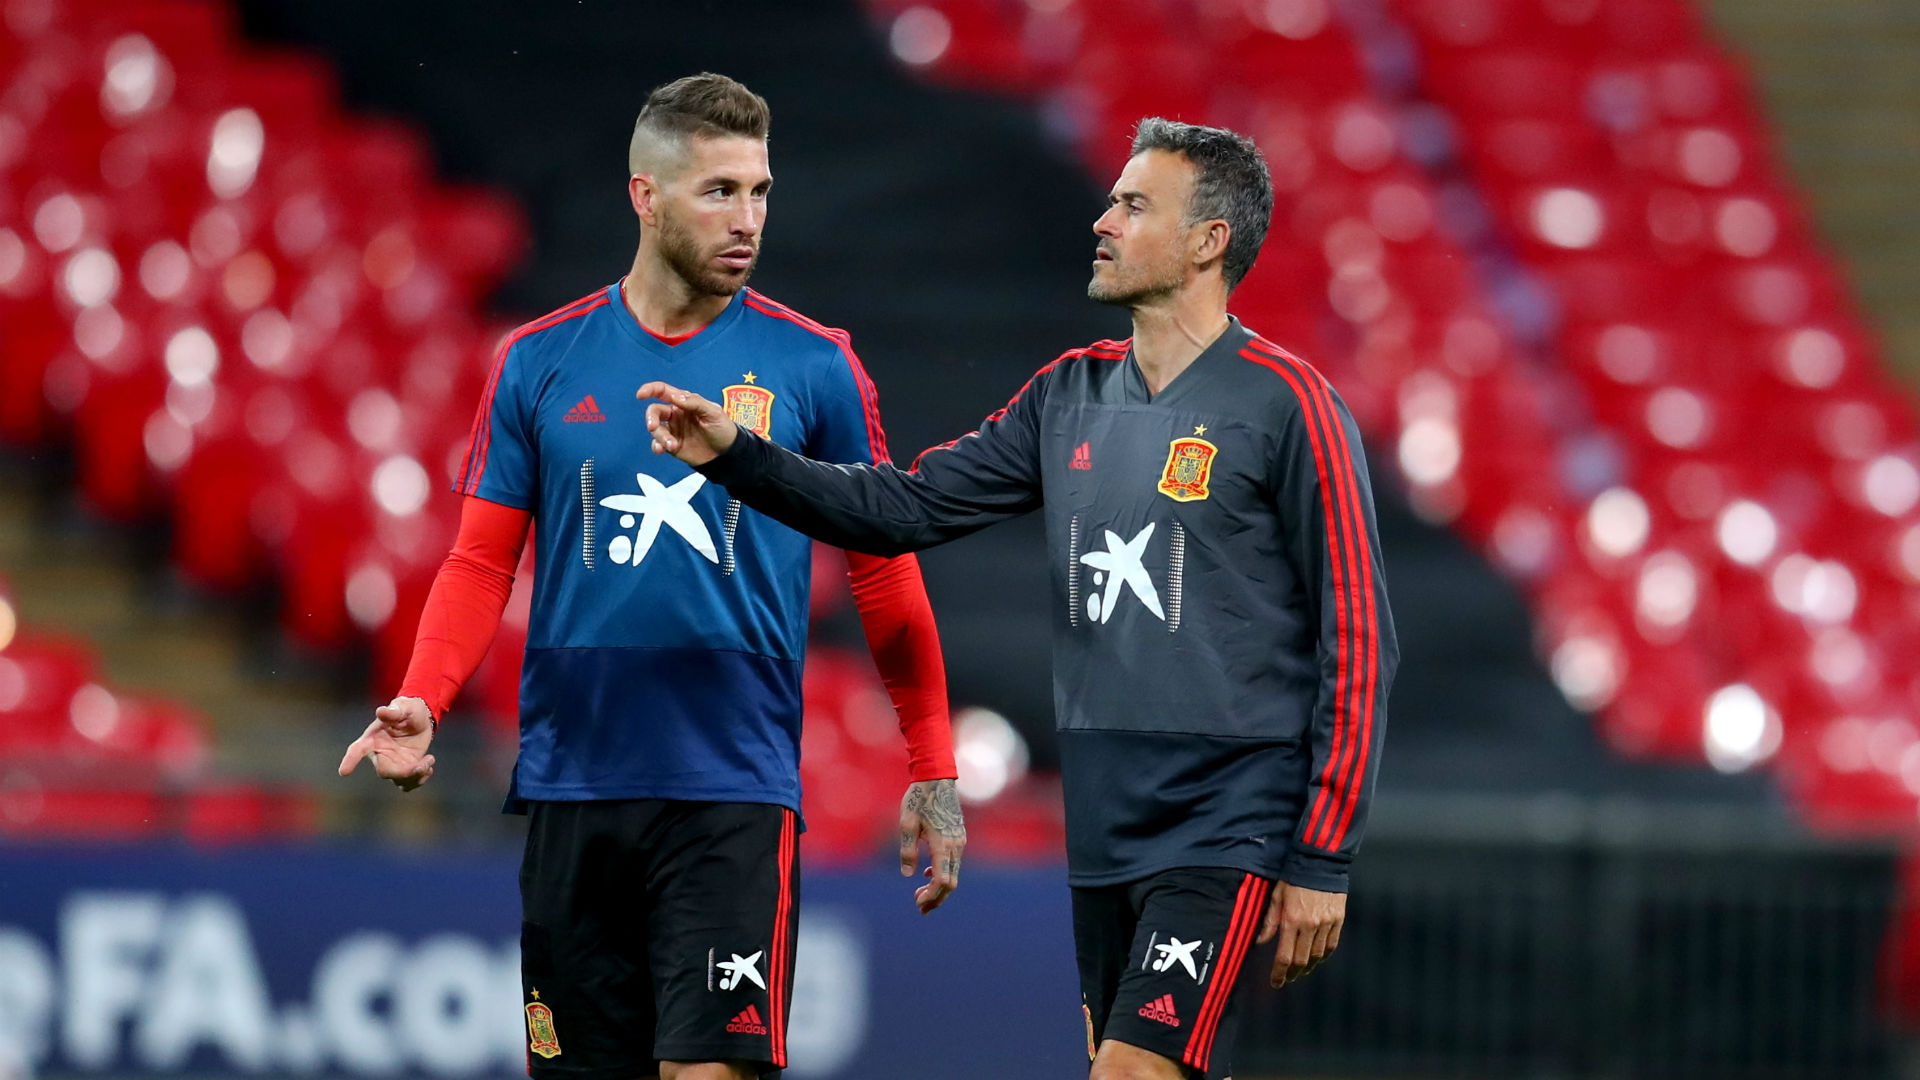 Spain will win for you - Ramos' message to absent Luis Enrique